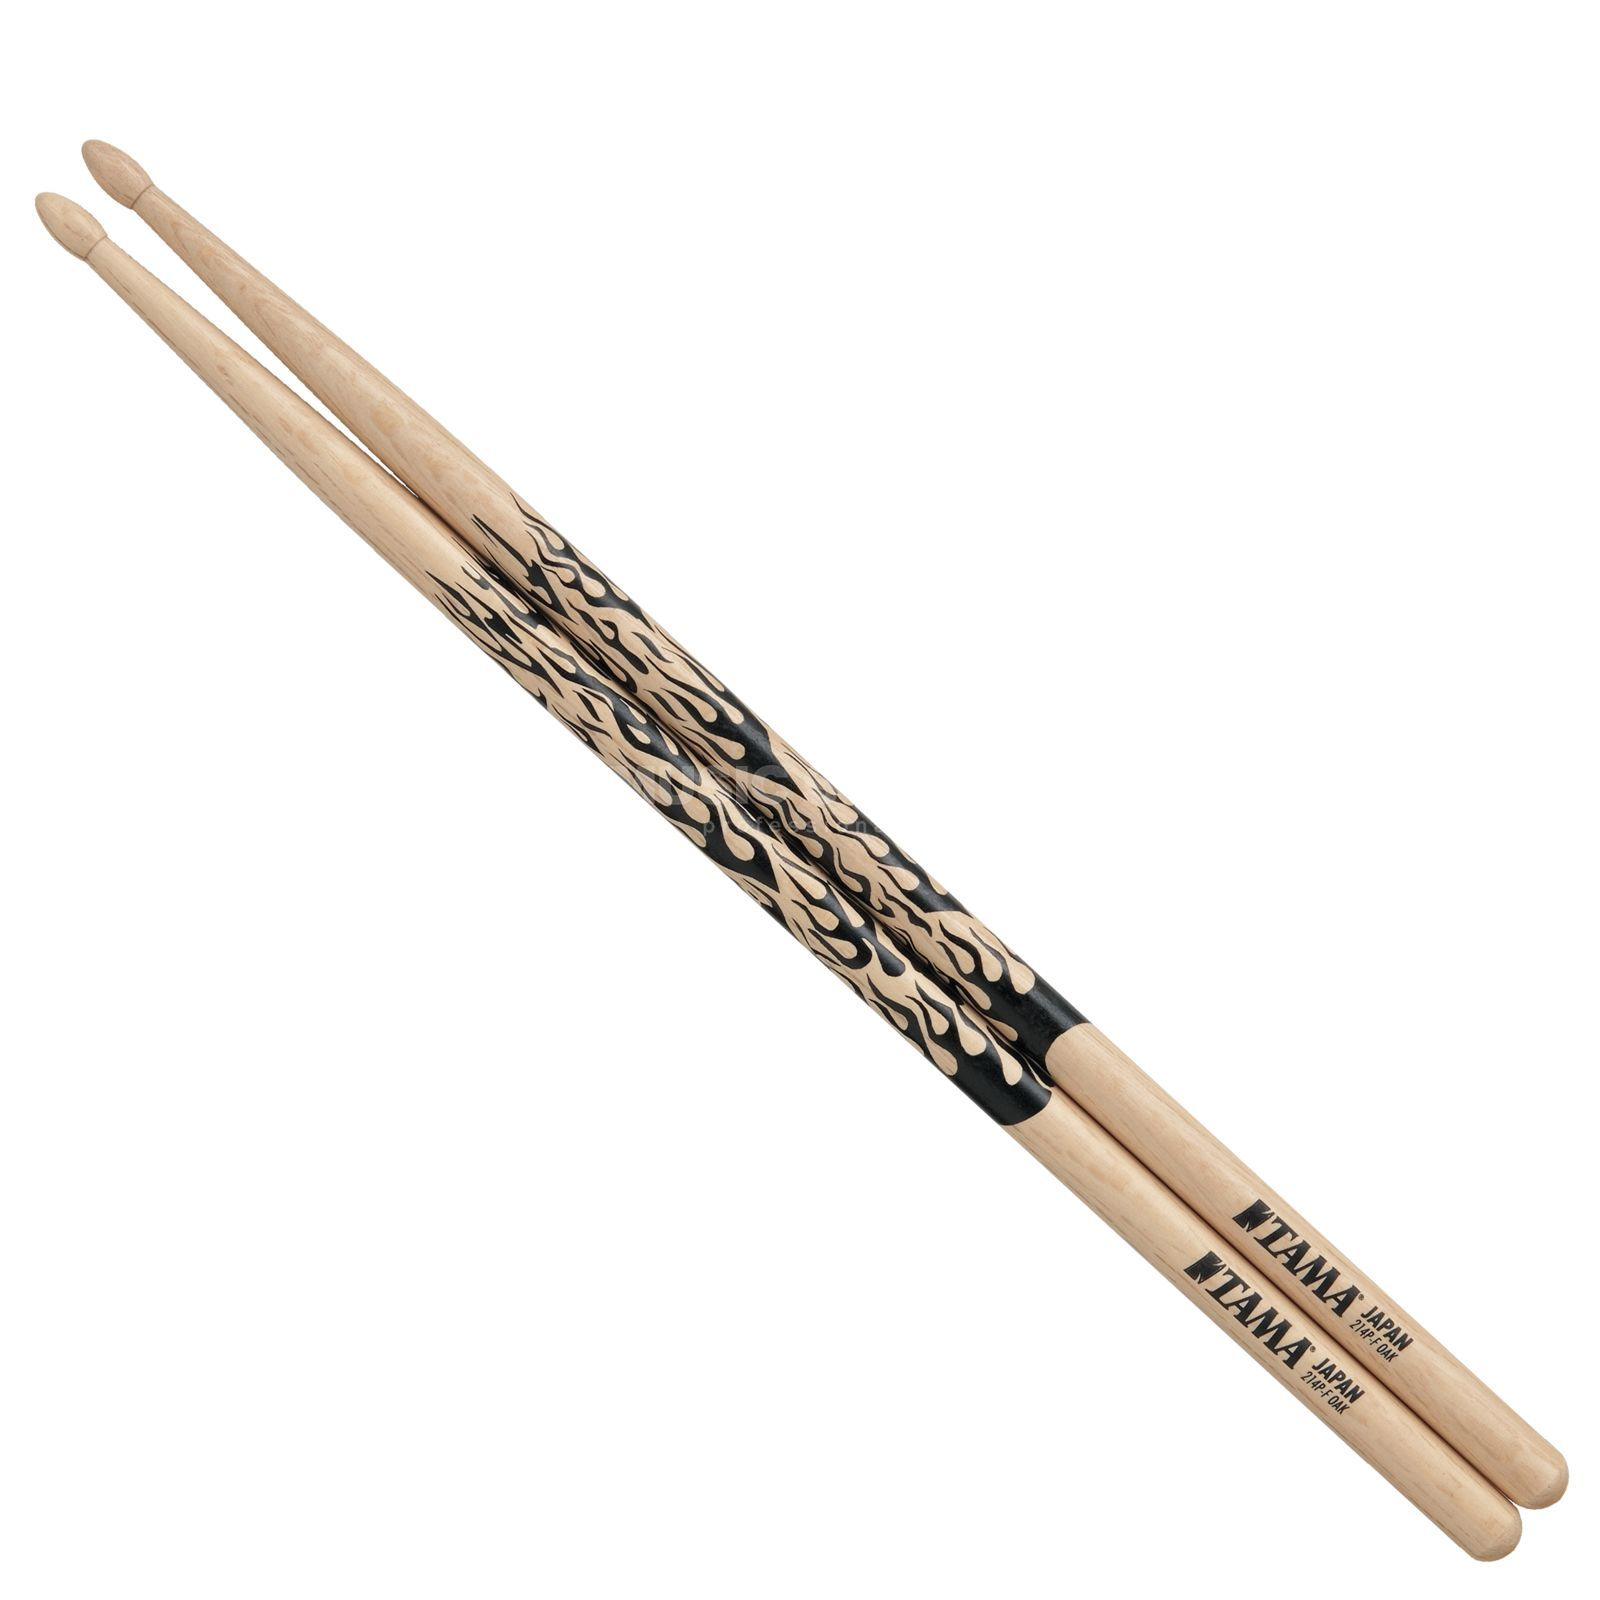 Tama Rhythmic Fire Sticks 5B-F Japanese Oak Produktbillede